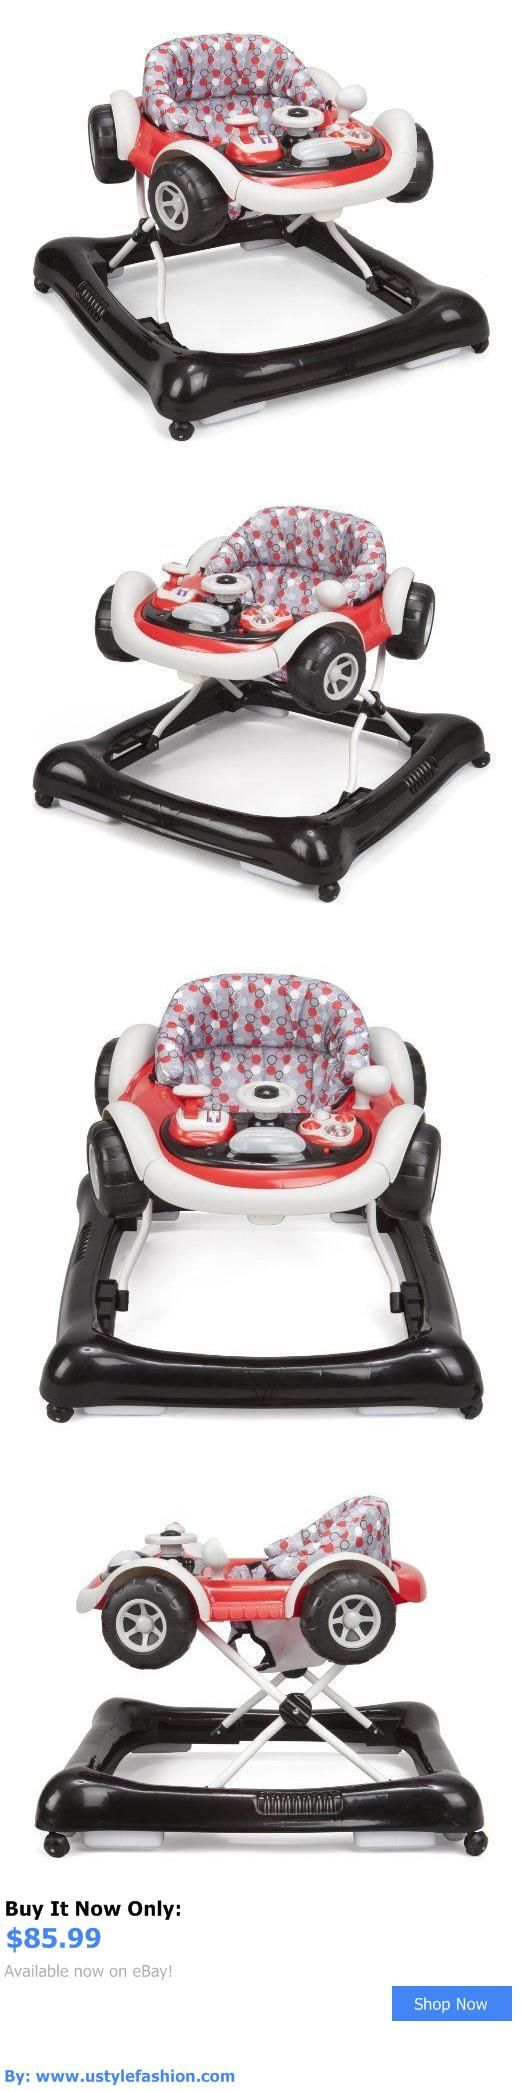 Baby walkers: Delta Children Lil Drive Baby Activity Walker, Adjustable Car Baby Walker BUY IT NOW ONLY: $85.99 #ustylefashionBabywalkers OR #ustylefashion